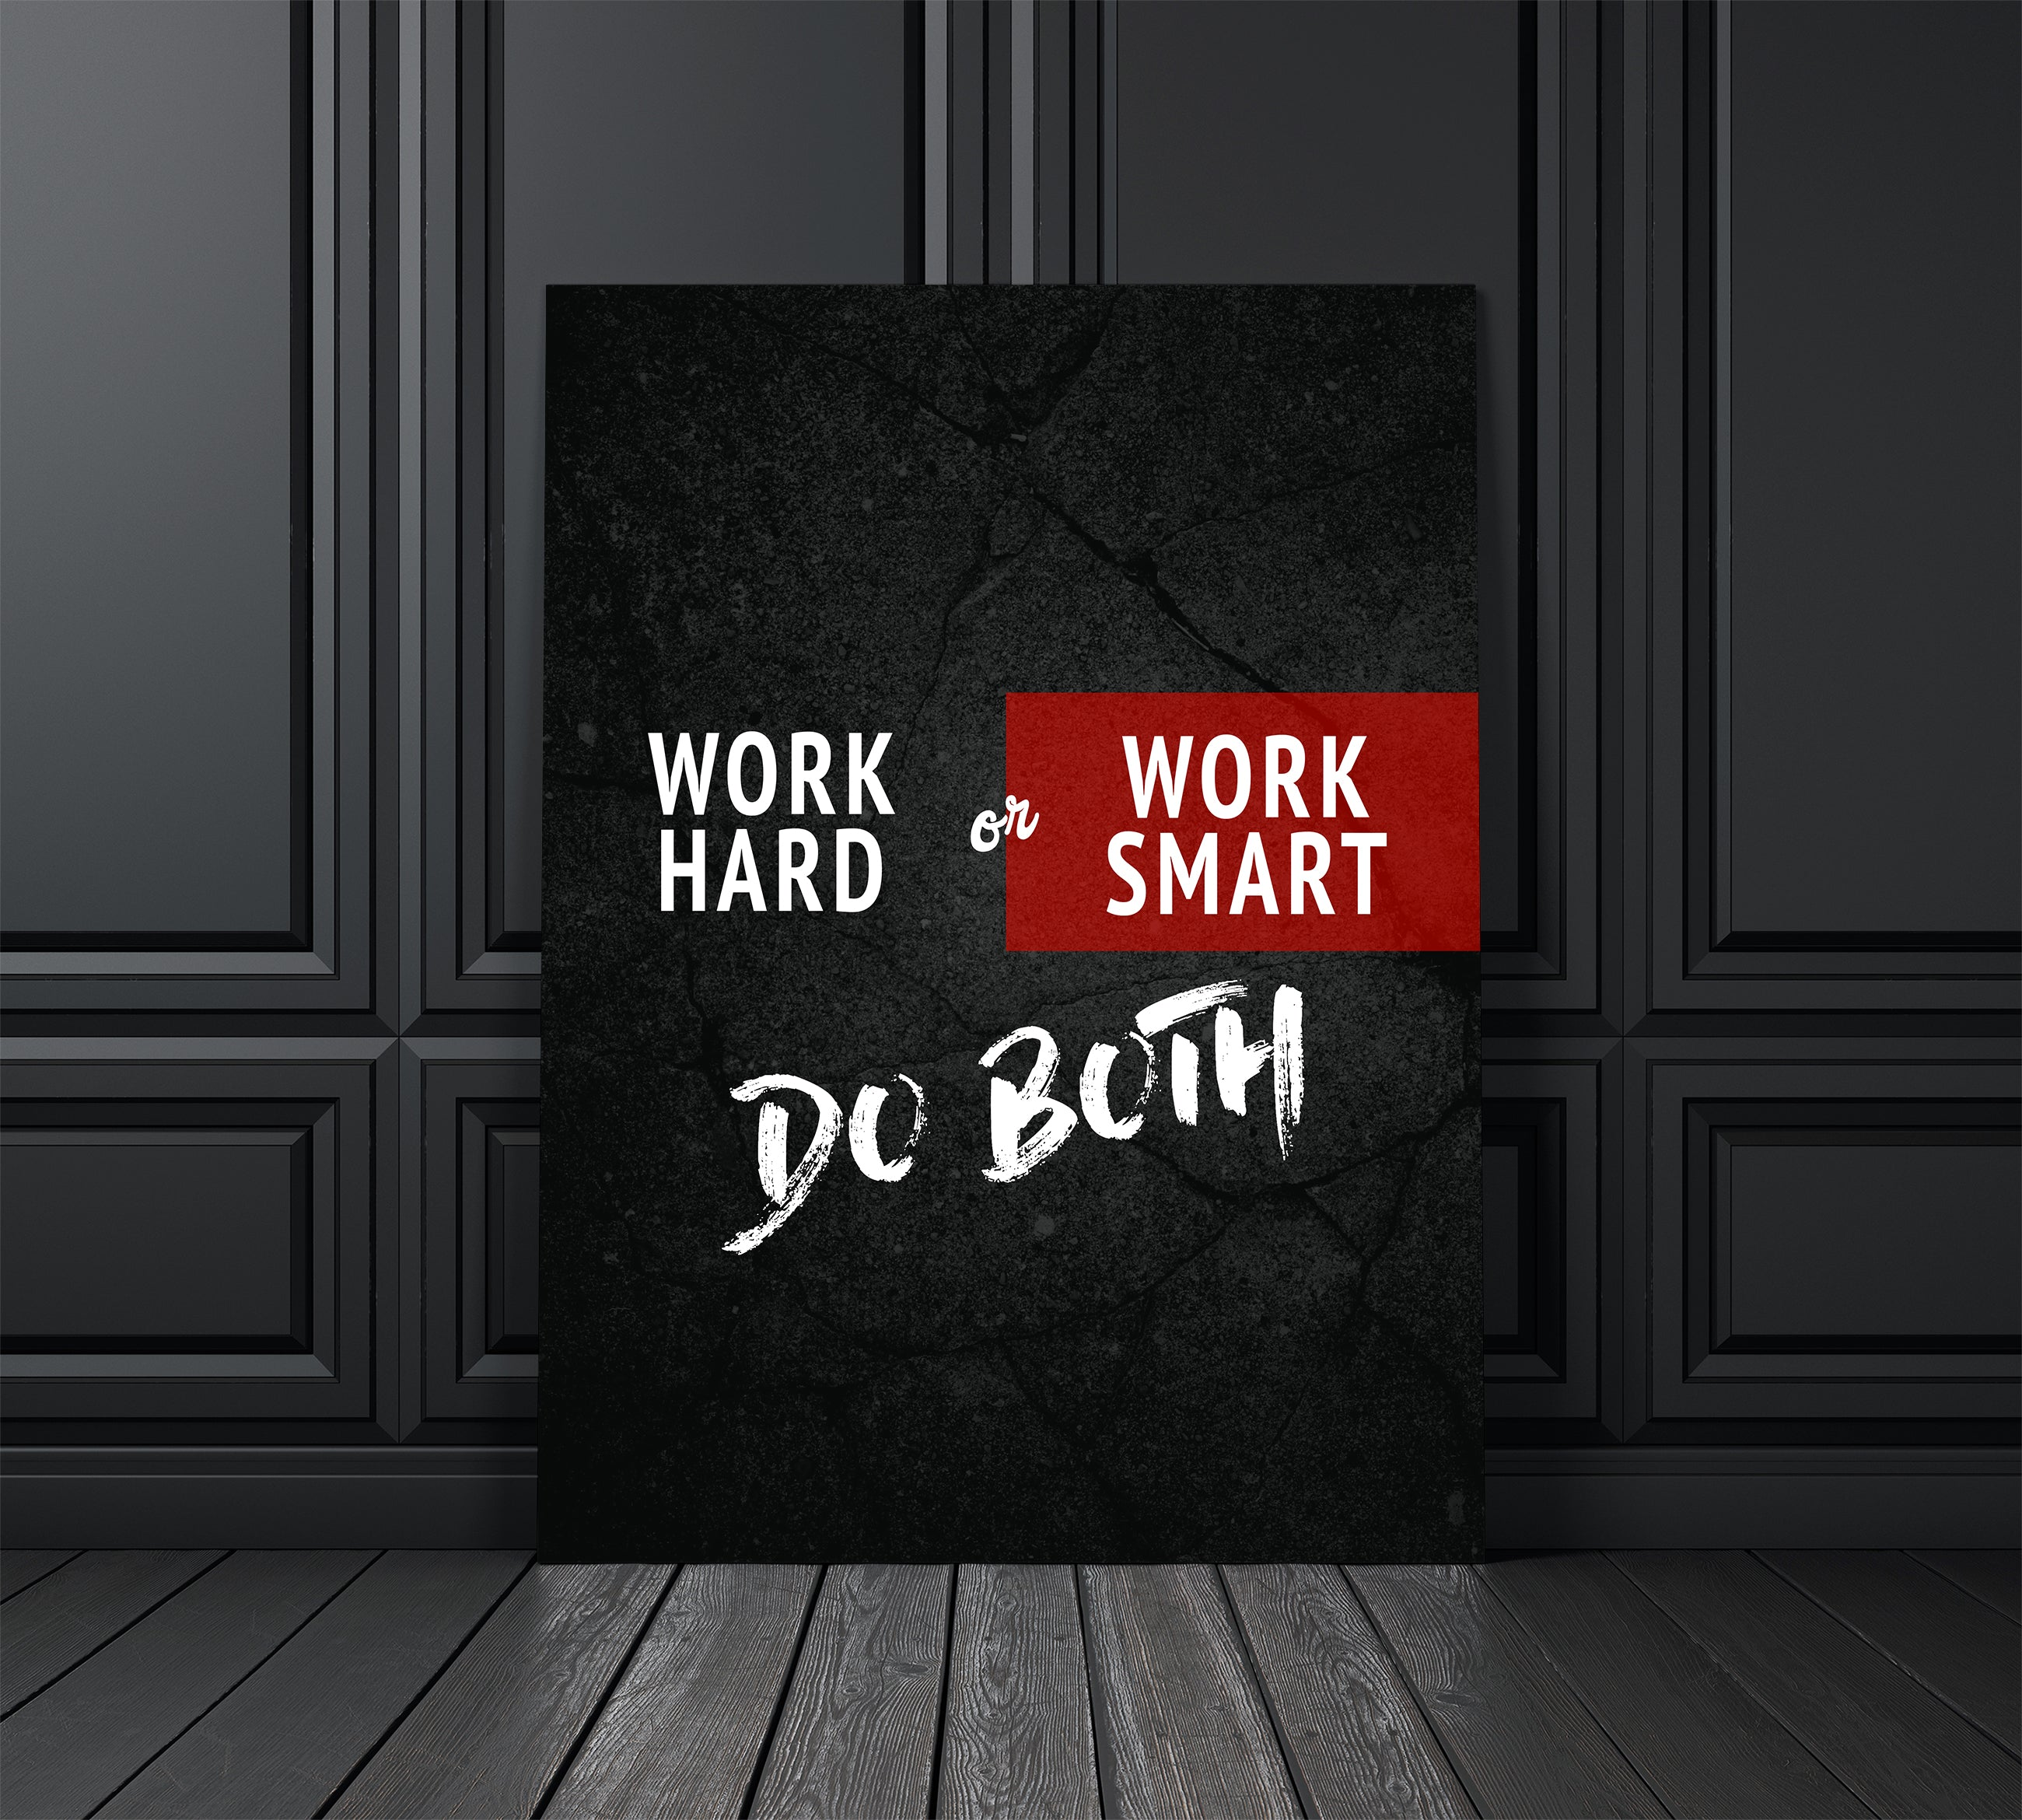 Work Hard or Work Smart